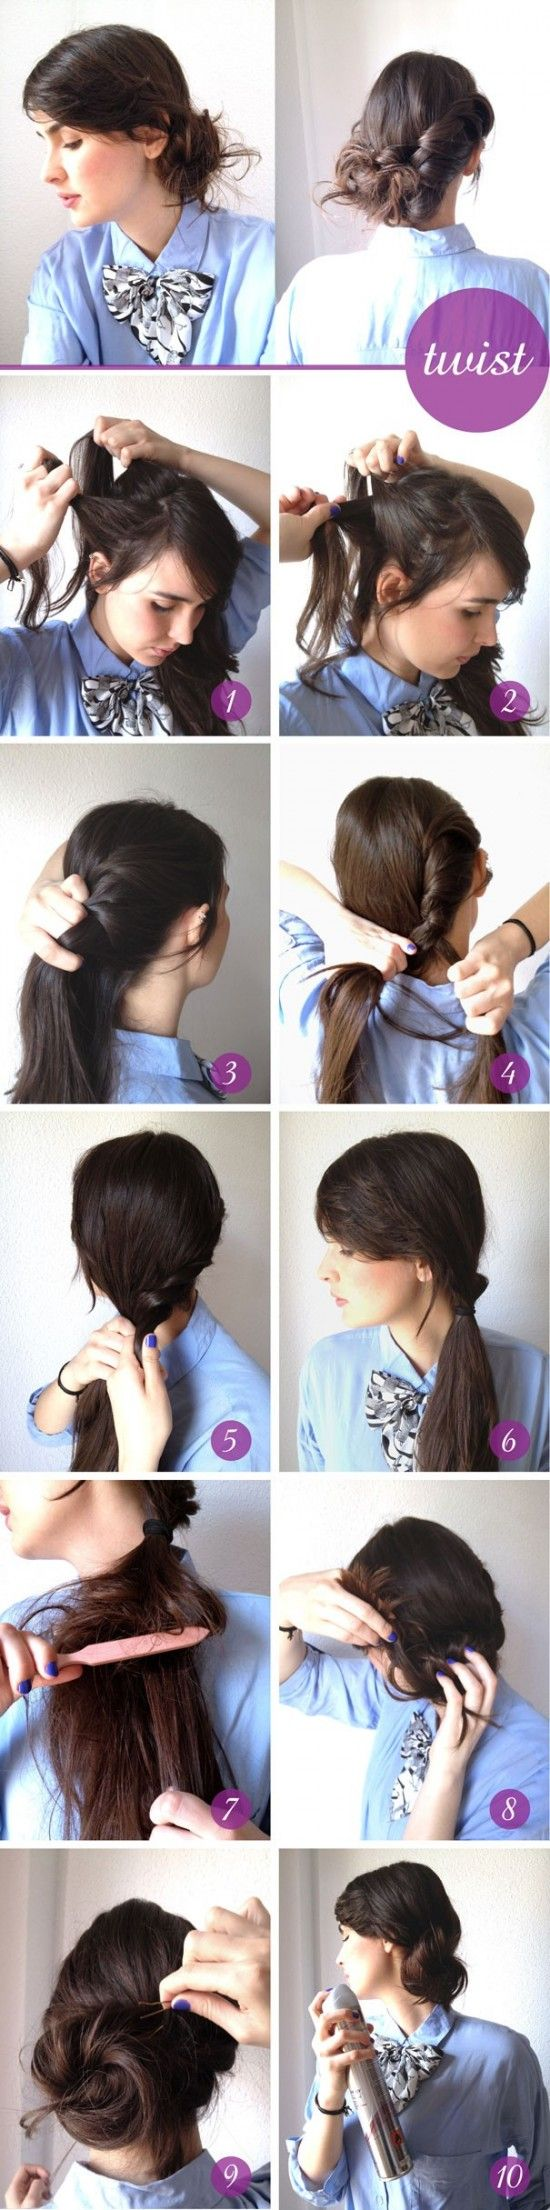 How to Style The Messy Twist Updo Hairstyle|Hairstyle Trends For /Winter 2013-2014|Best Braided Hairstyles For Women | Braided Hair Looks & Ideas|Fall 2013 Hairstyle Trends: Fall 2013 Low Ponytails|Hairstyle Ideas for Teens - Cute Hair Ideas and Hair Style Tips